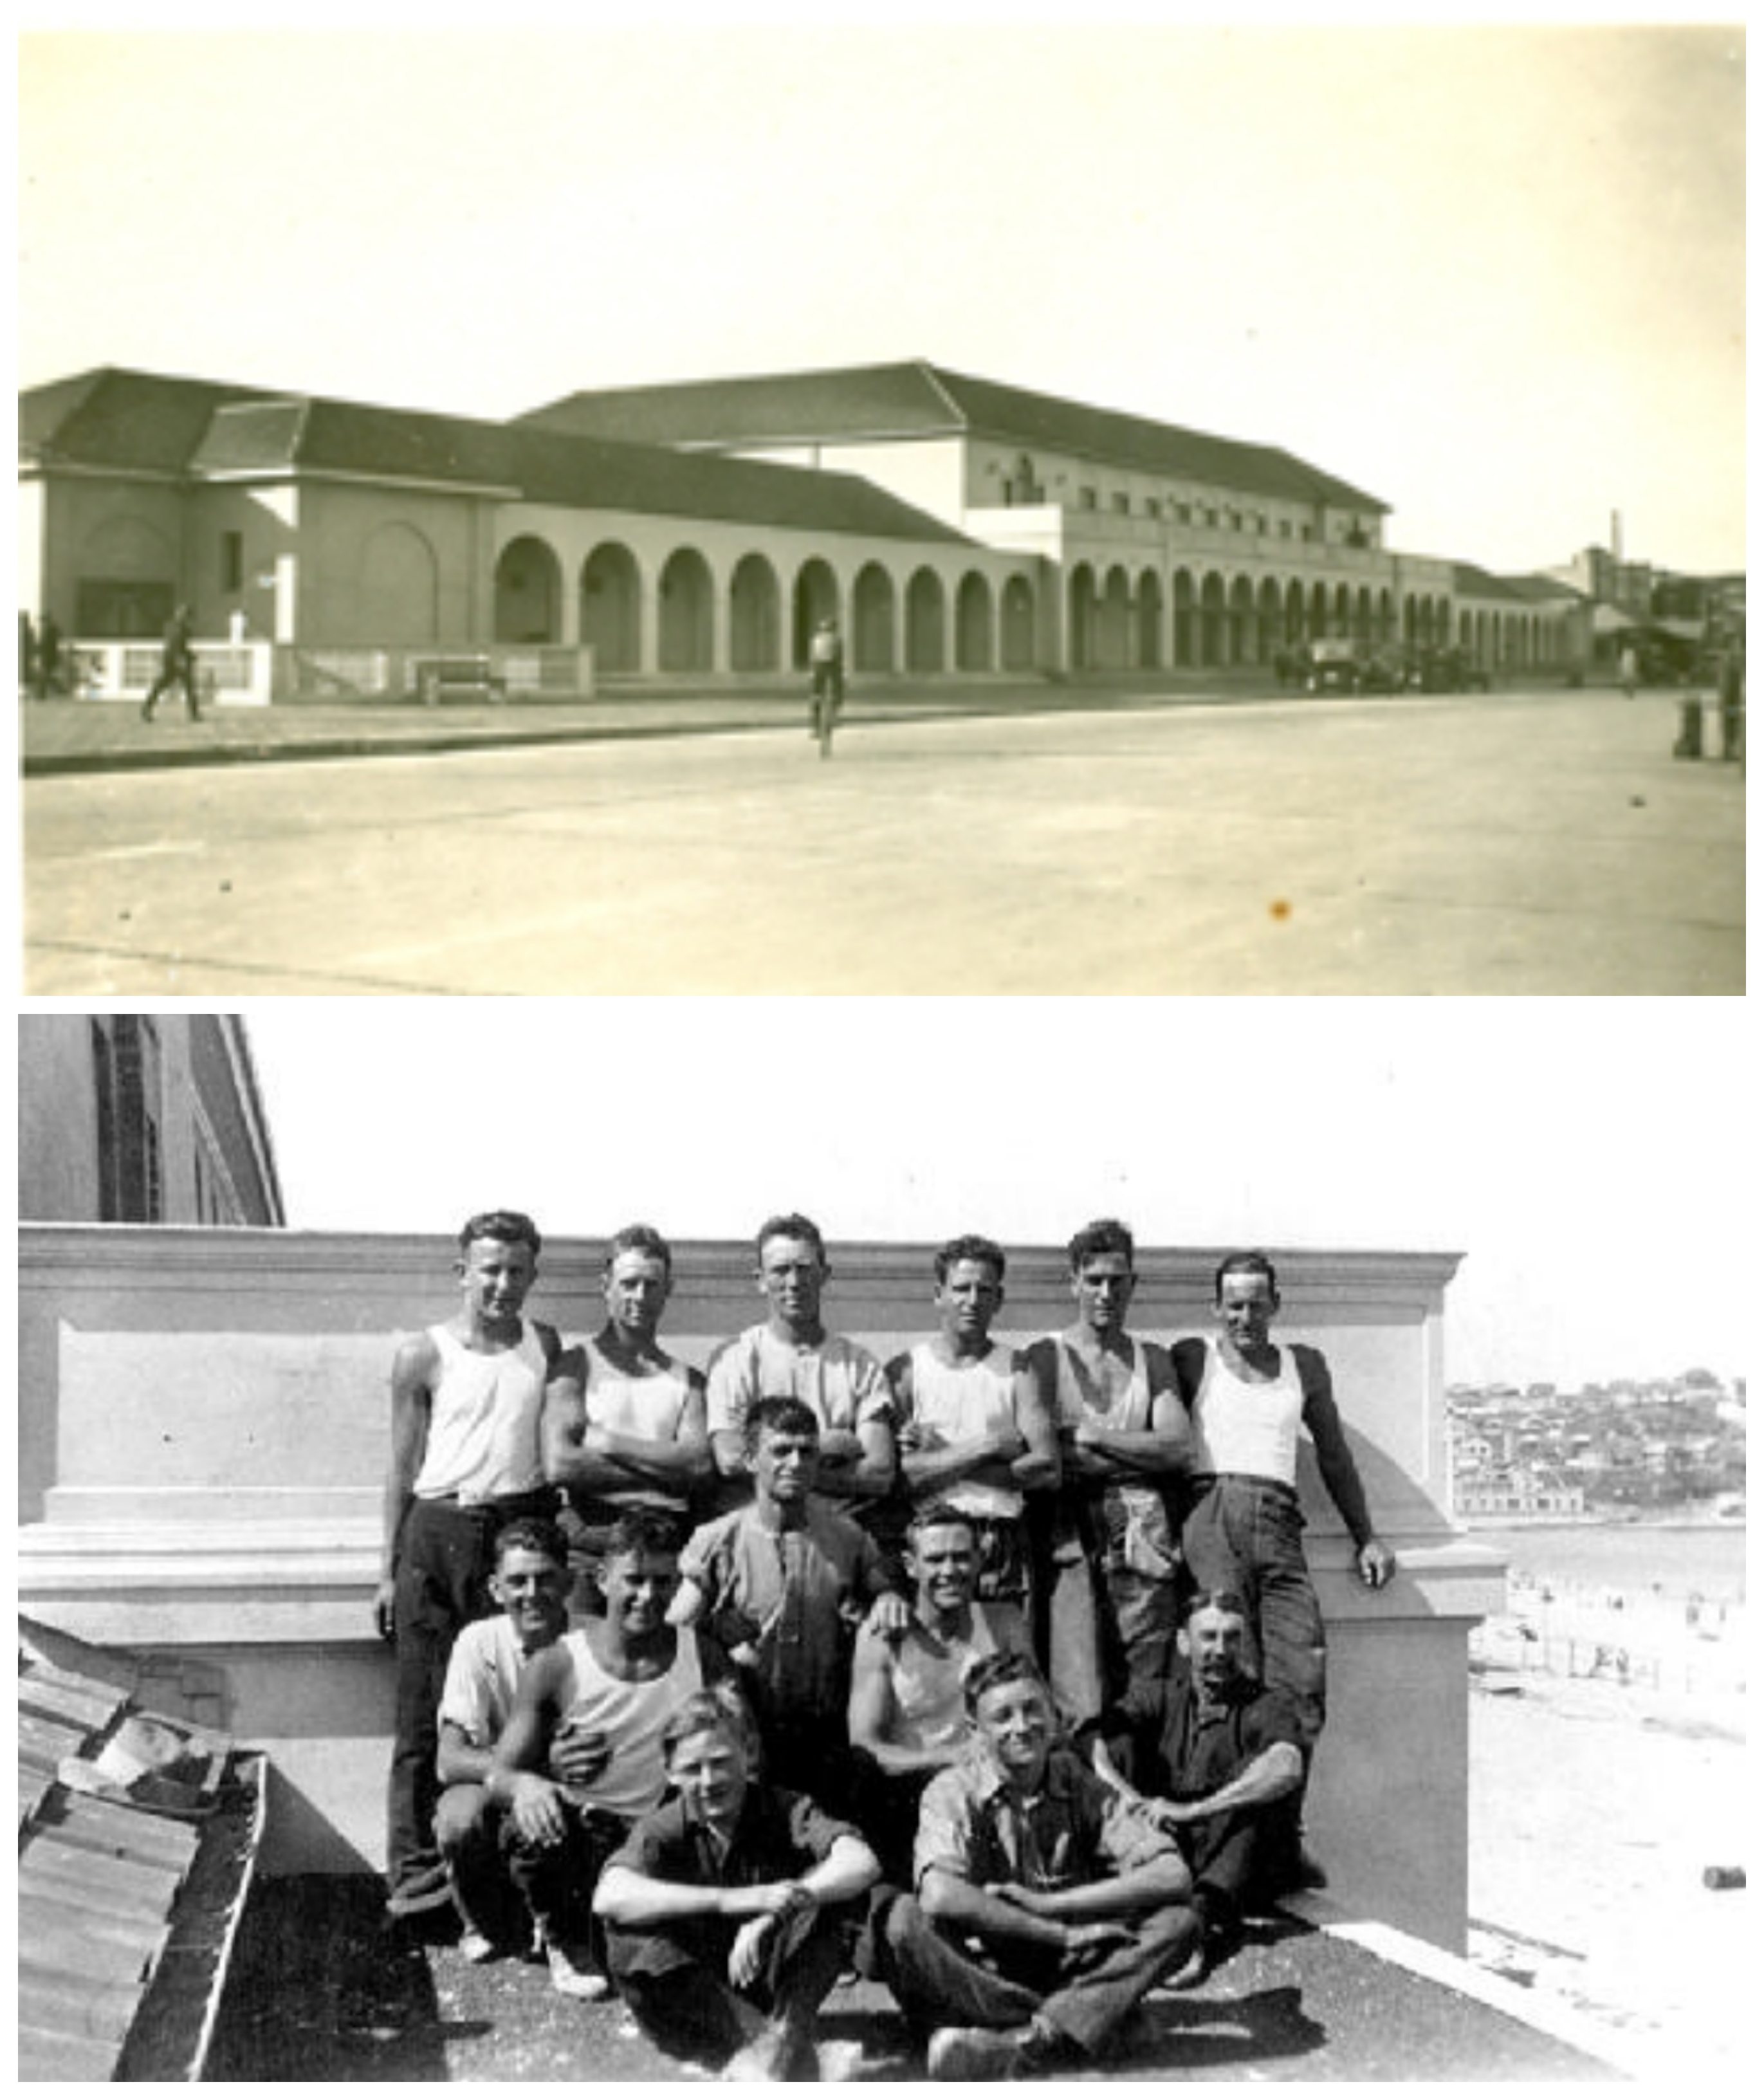 Early image of Bondi Pavilion. Below: Council workers building the Pavilion in 1928.